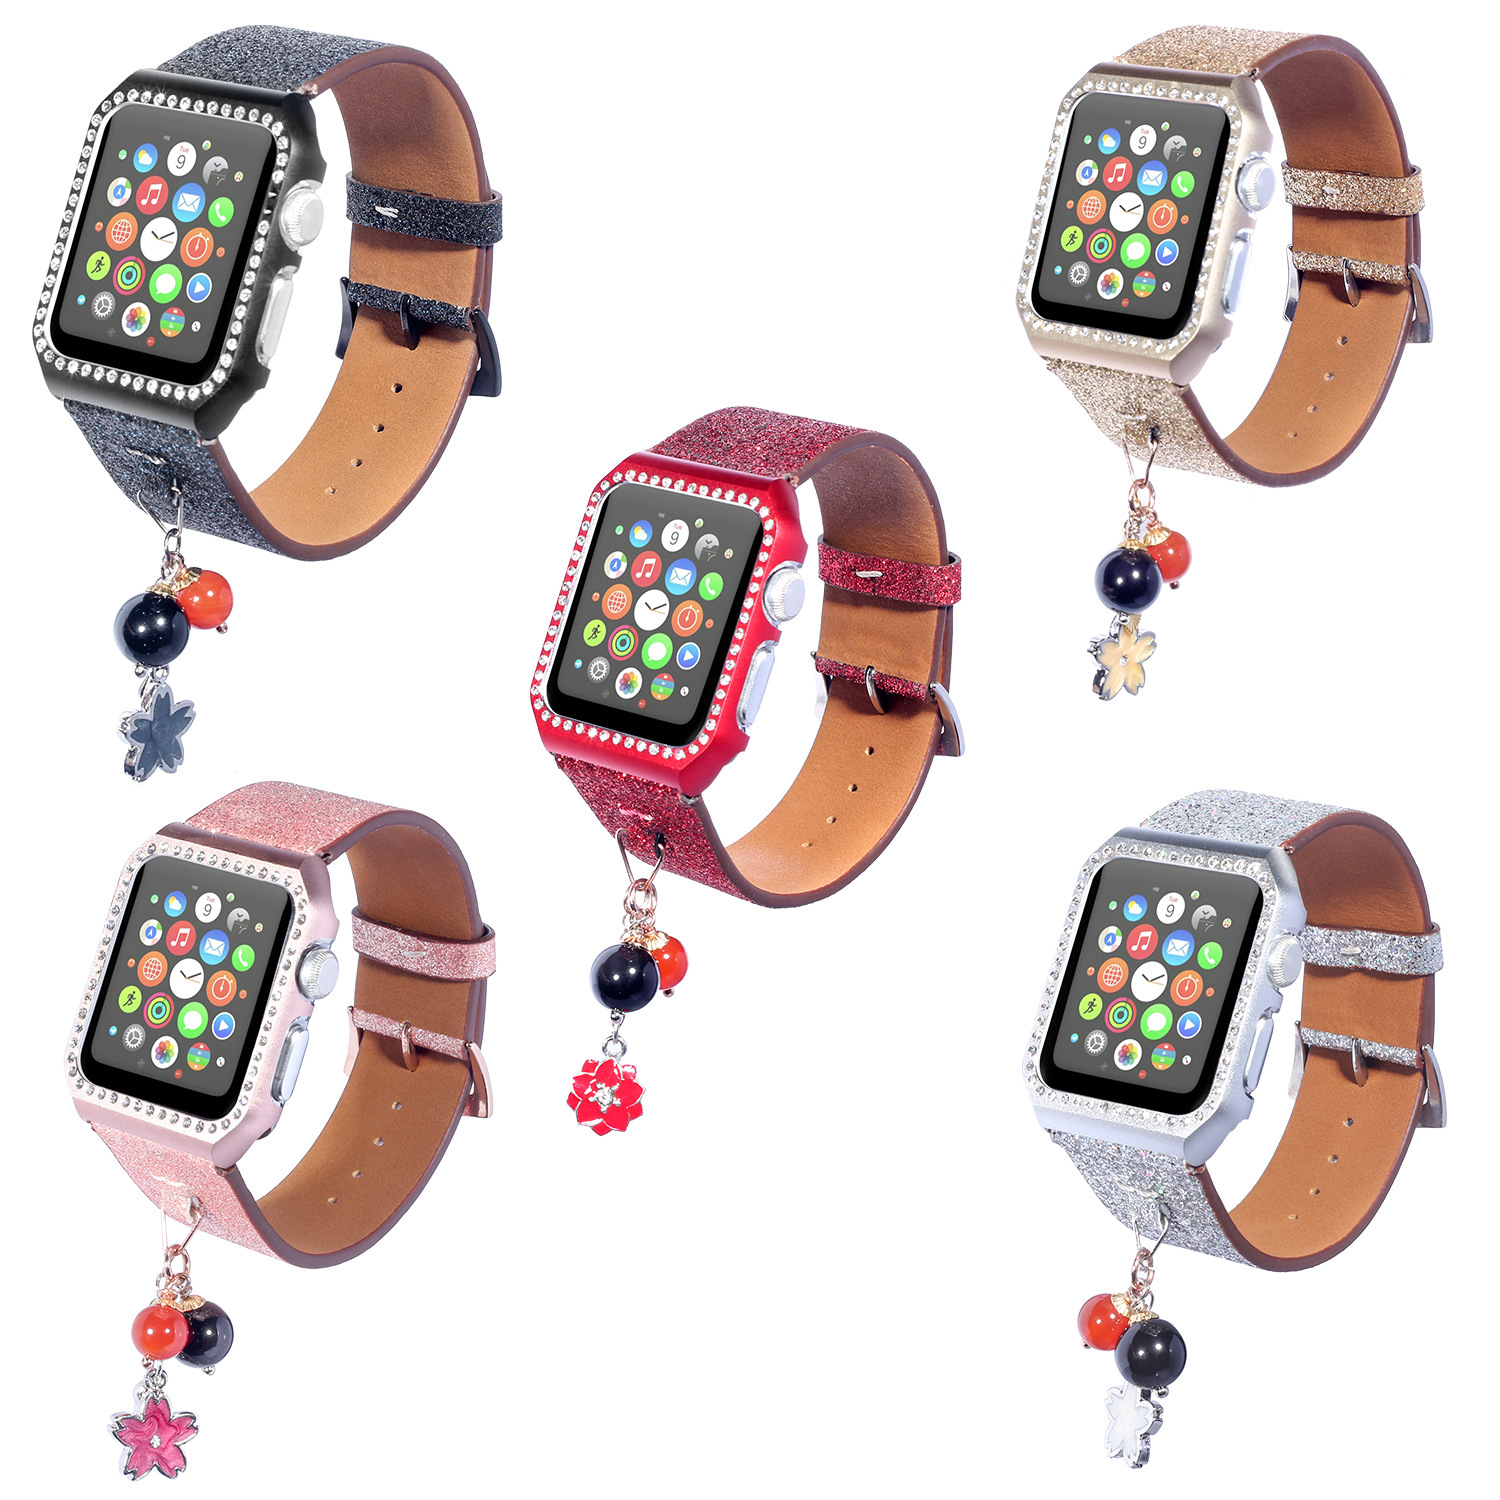 Suitable For AppleWatch Smart Watch One Two Three Generation Shimmering Powder Sequin Star Round Ball Hanging Decoration Leather